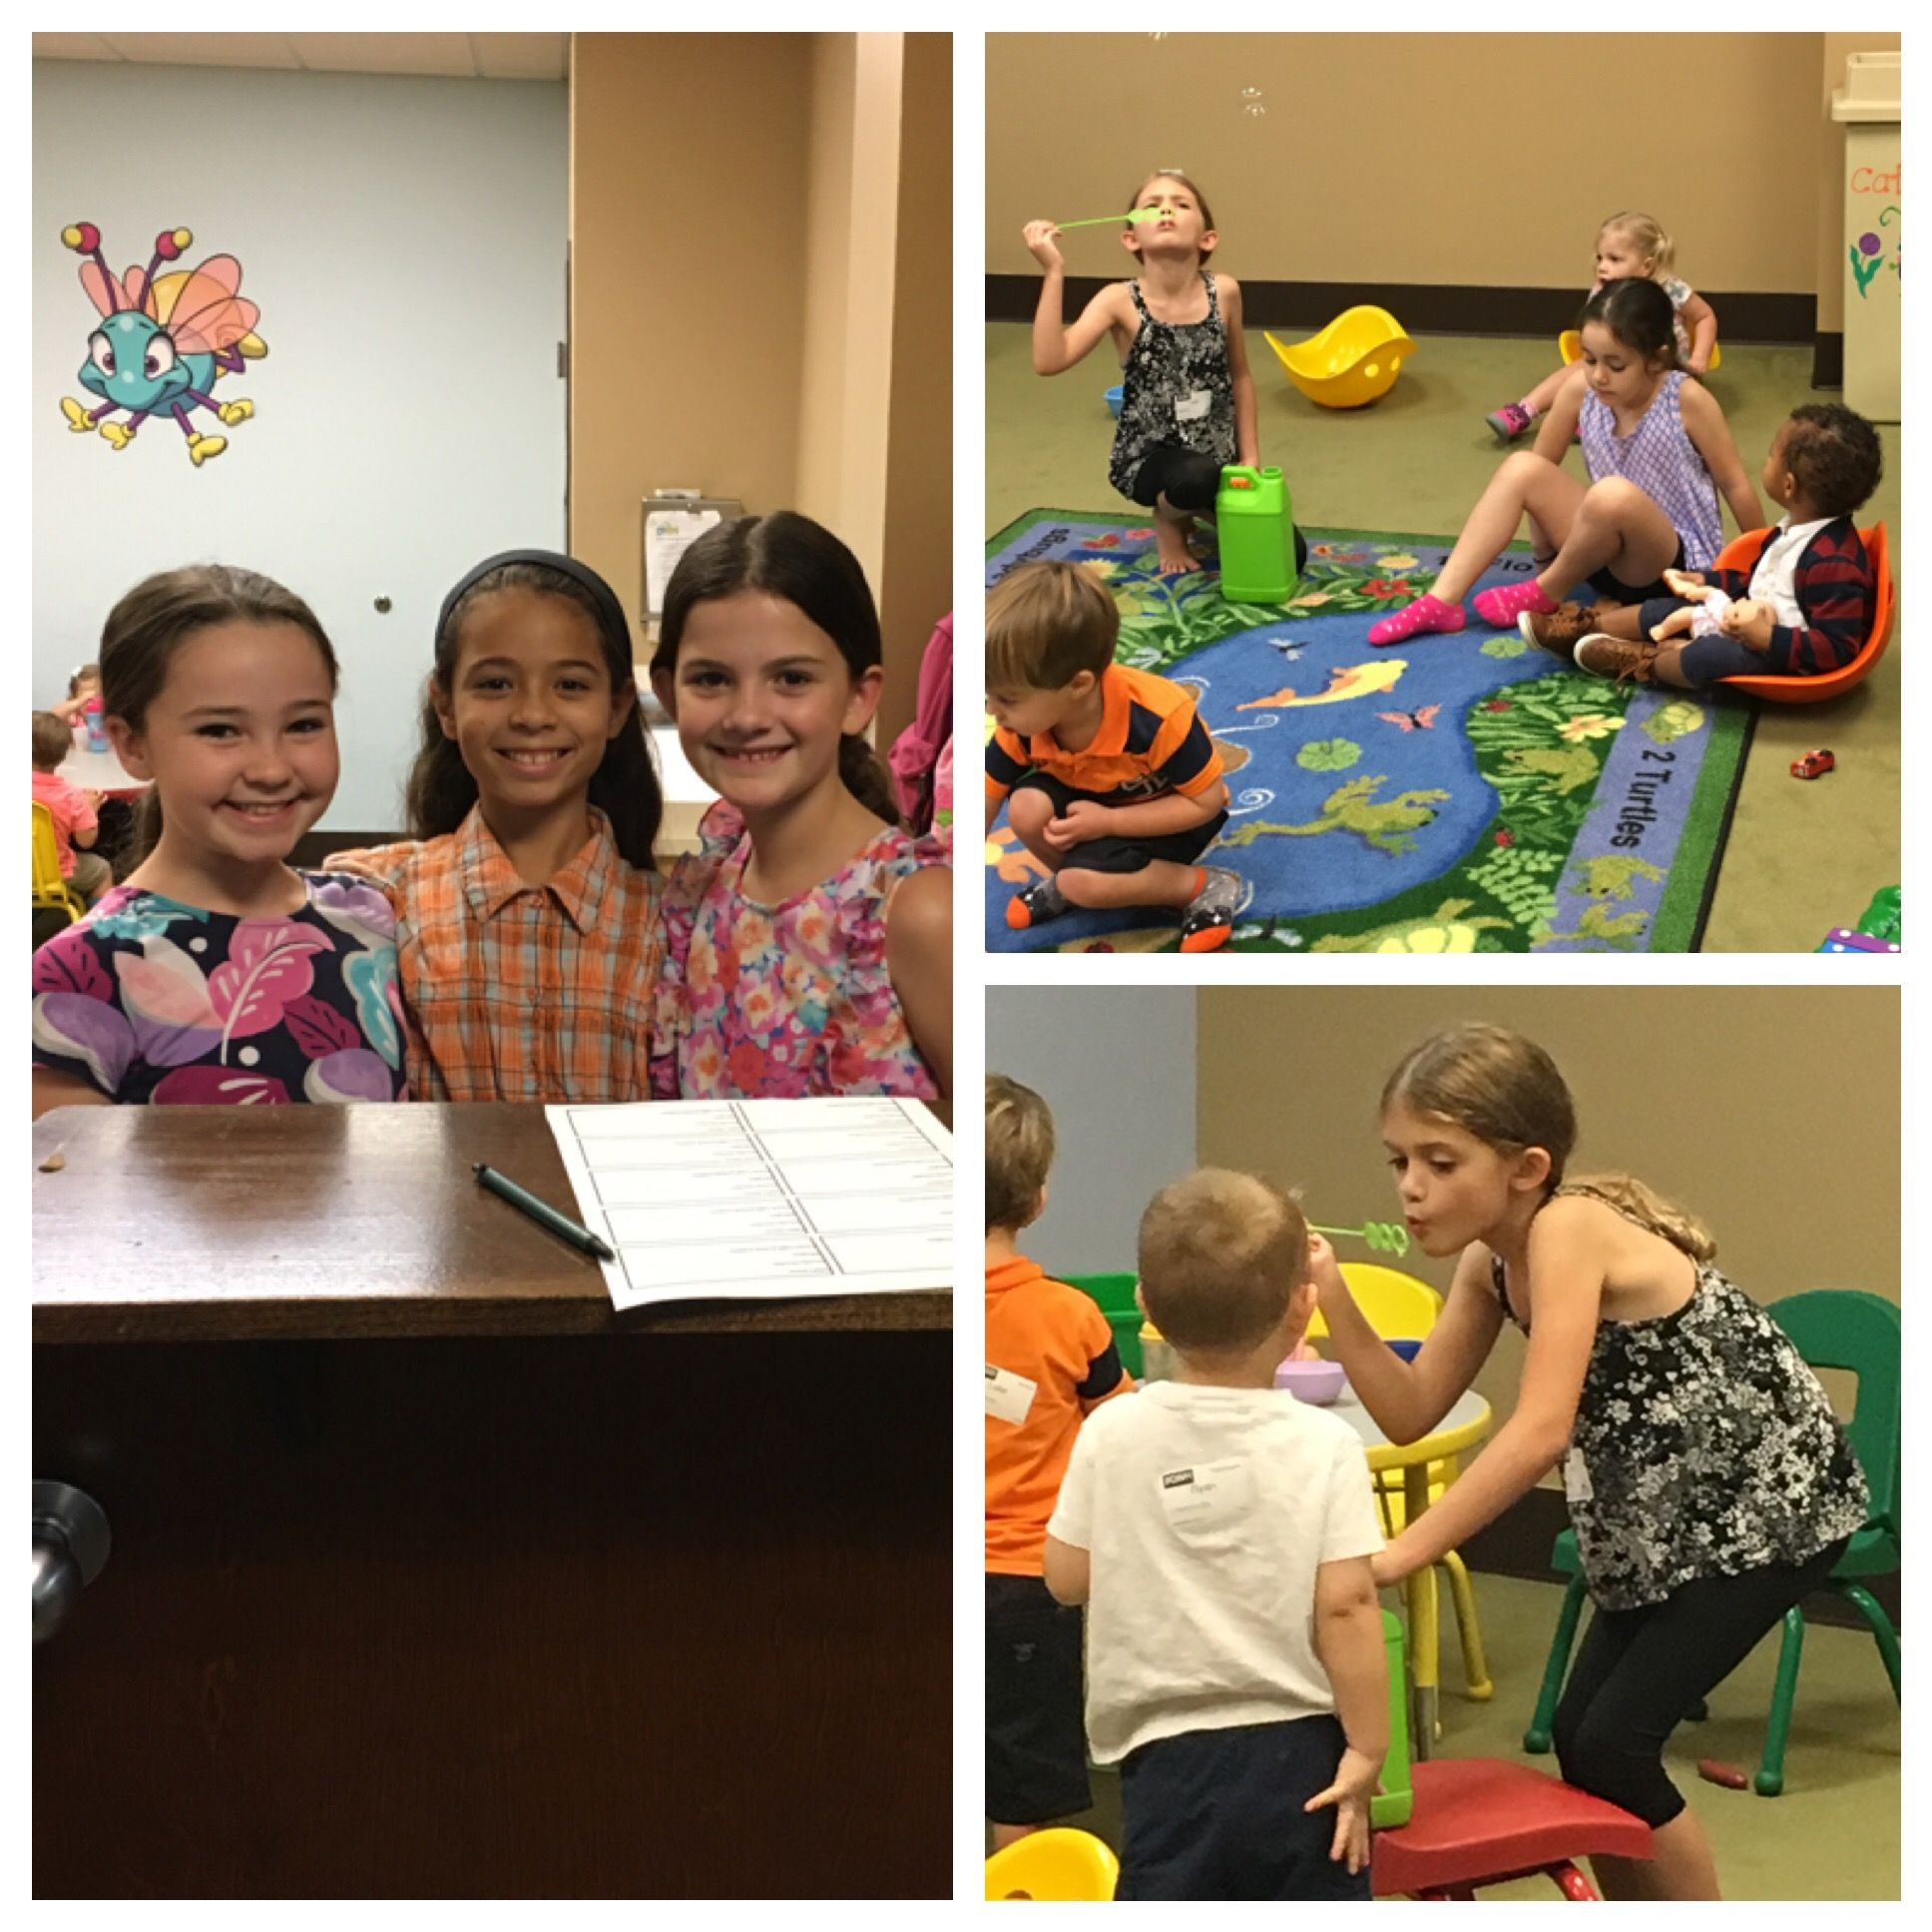 Serving in 2 year old rooms during CF Mom's!